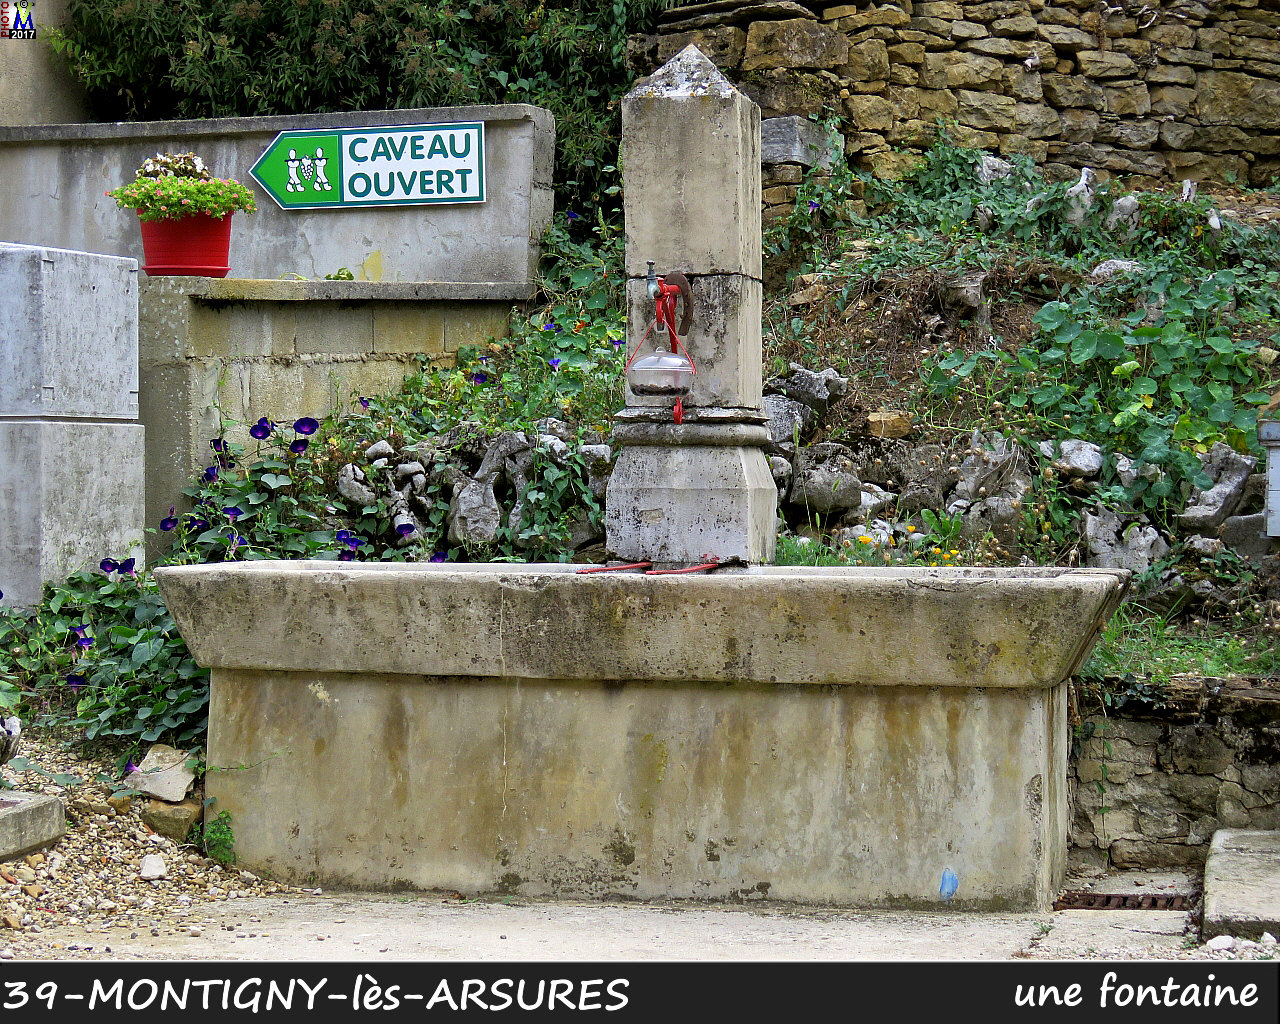 39MONTIGNY-les-ARSURES_fontaine_110.jpg